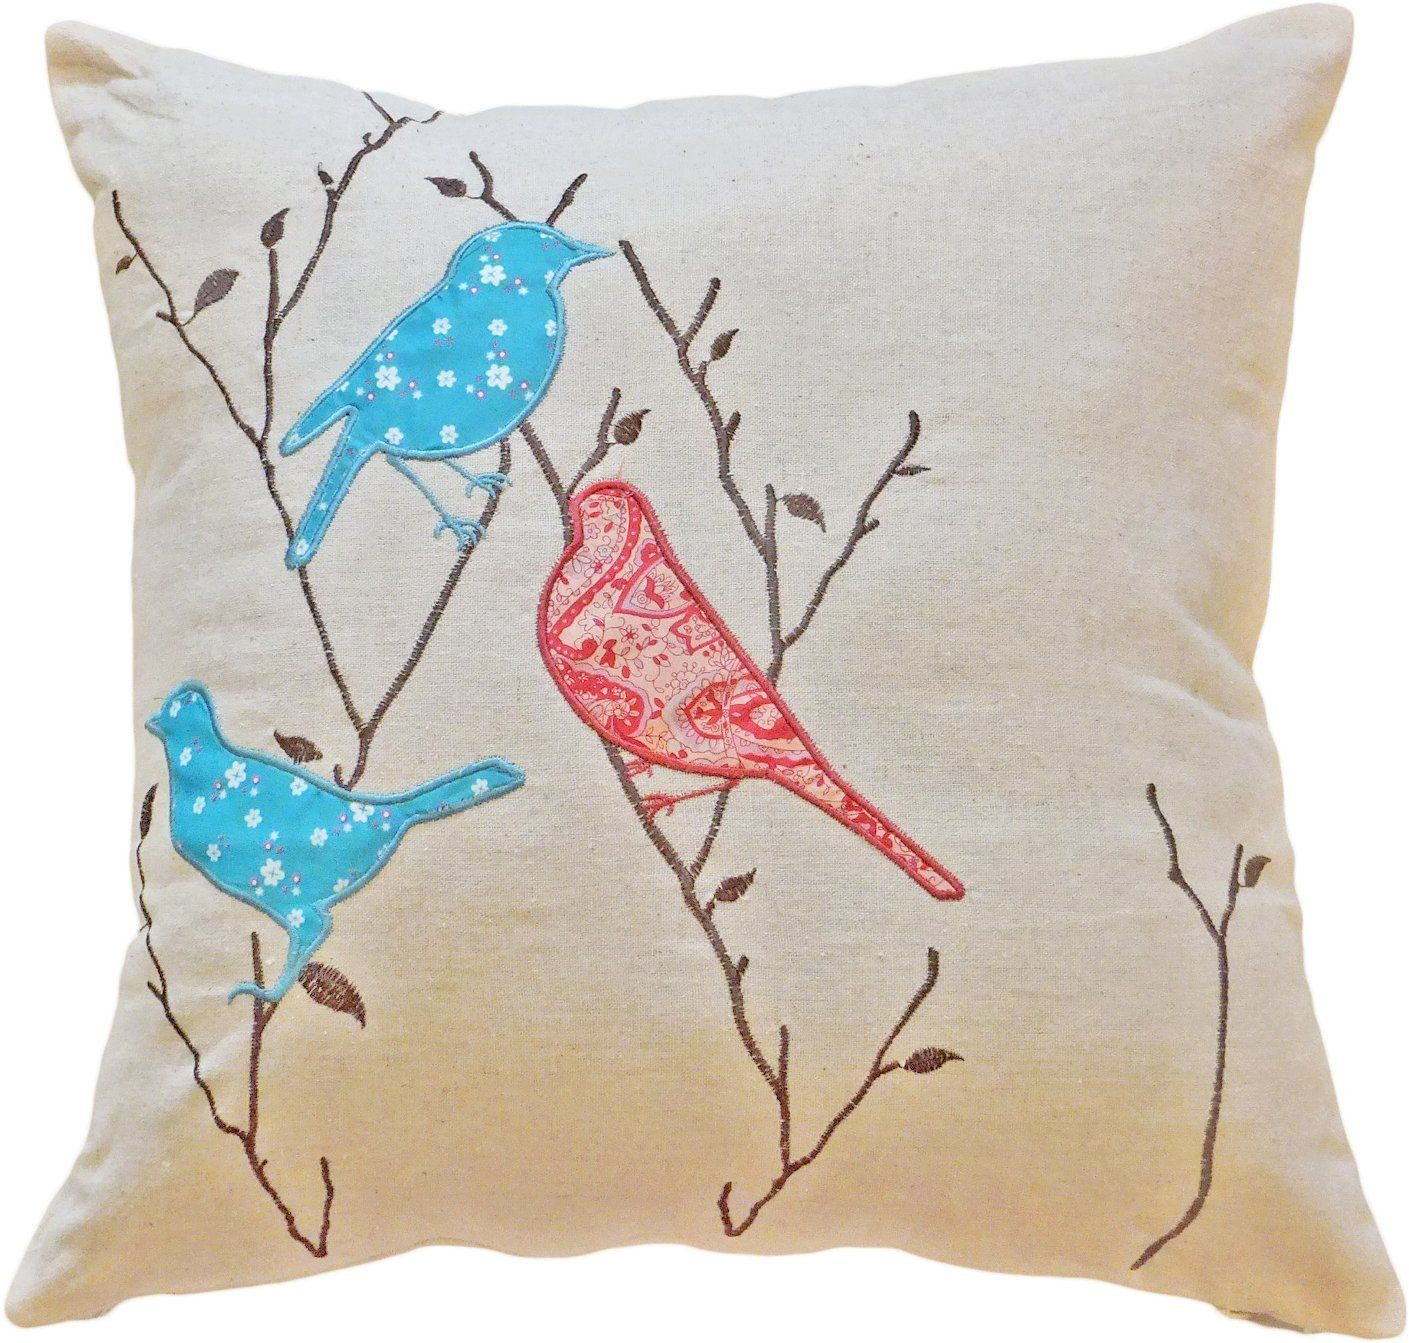 Decorative Birds Applique with Embroidery Leaves Floral Pillow ...